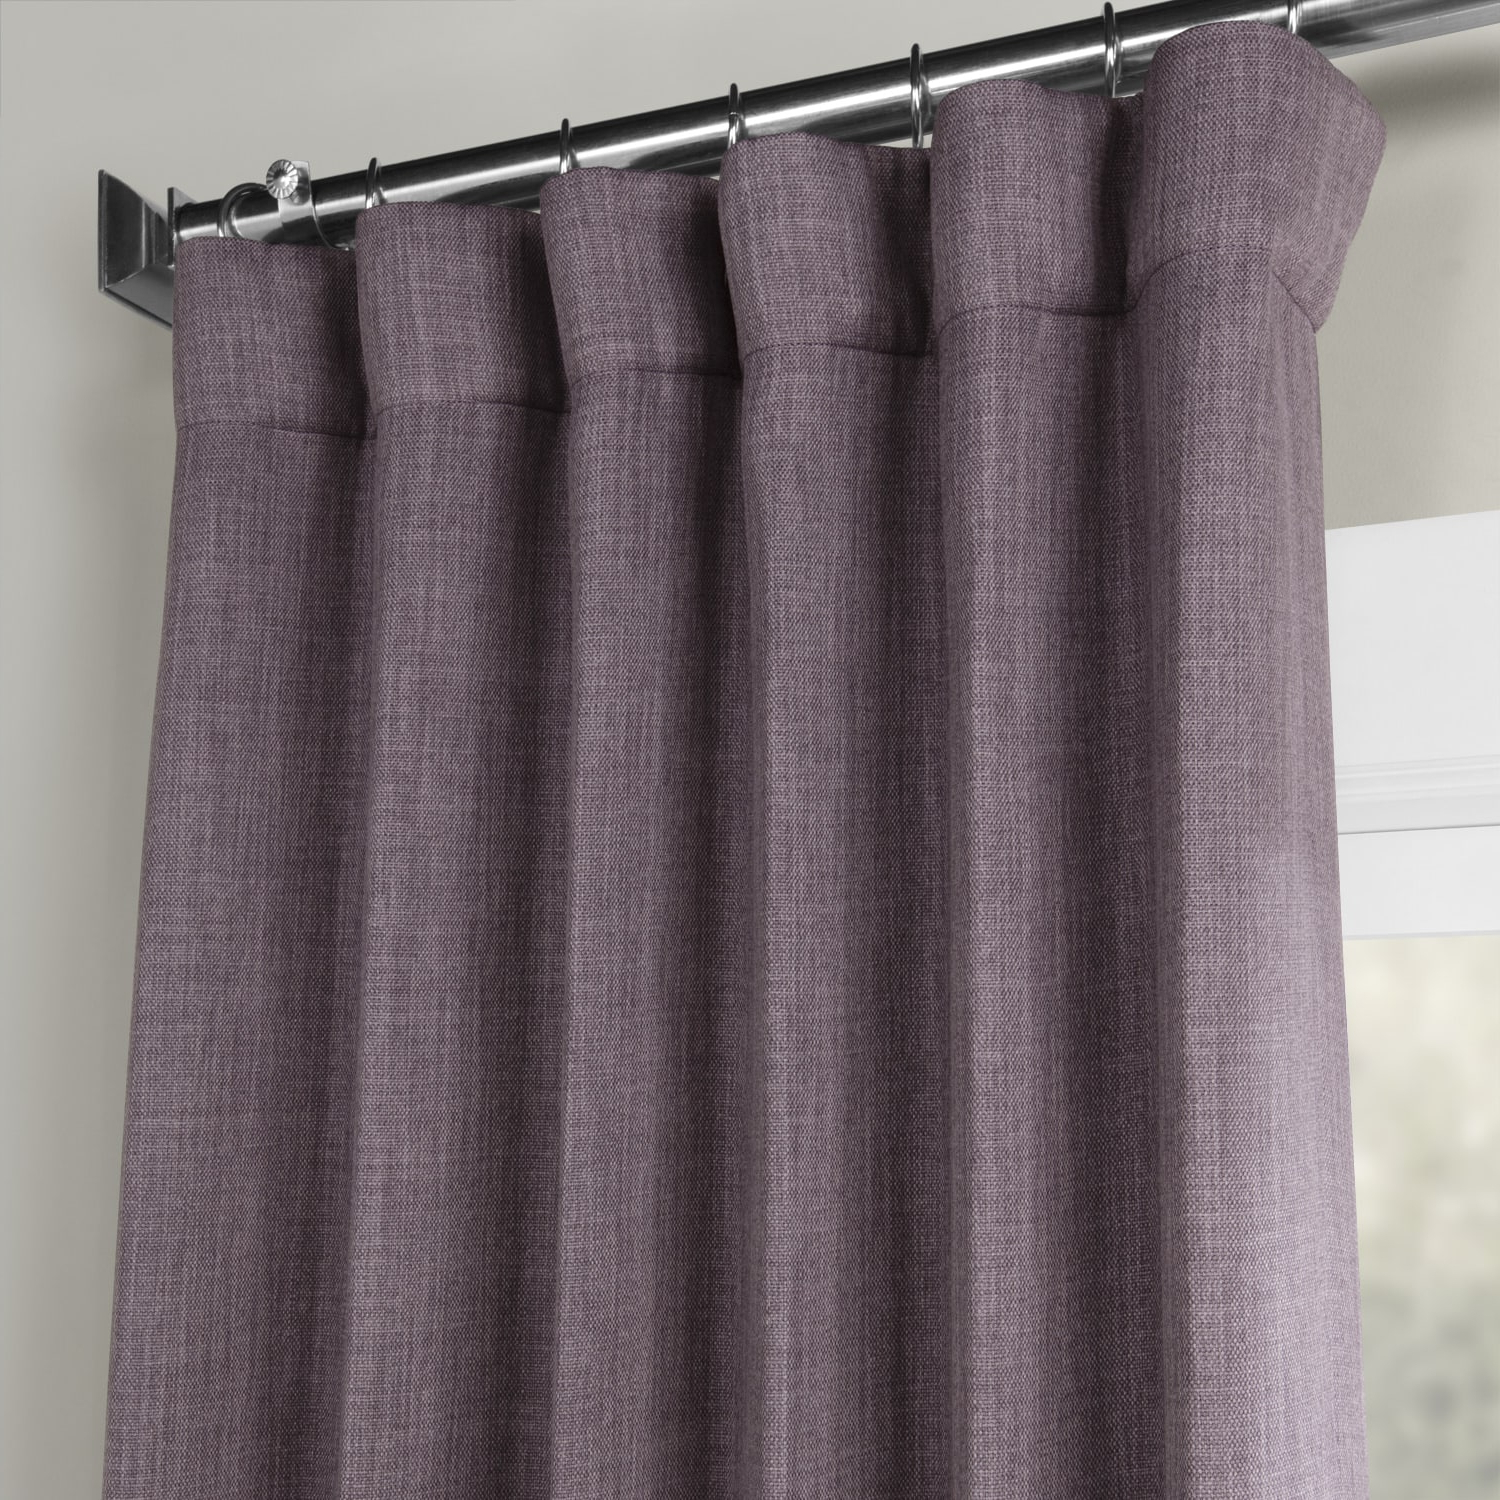 Faux Linen Blackout Curtains With Regard To 2020 Details About Faux Linen Blackout Curtains (Sold Per Panel) (Gallery 12 of 20)